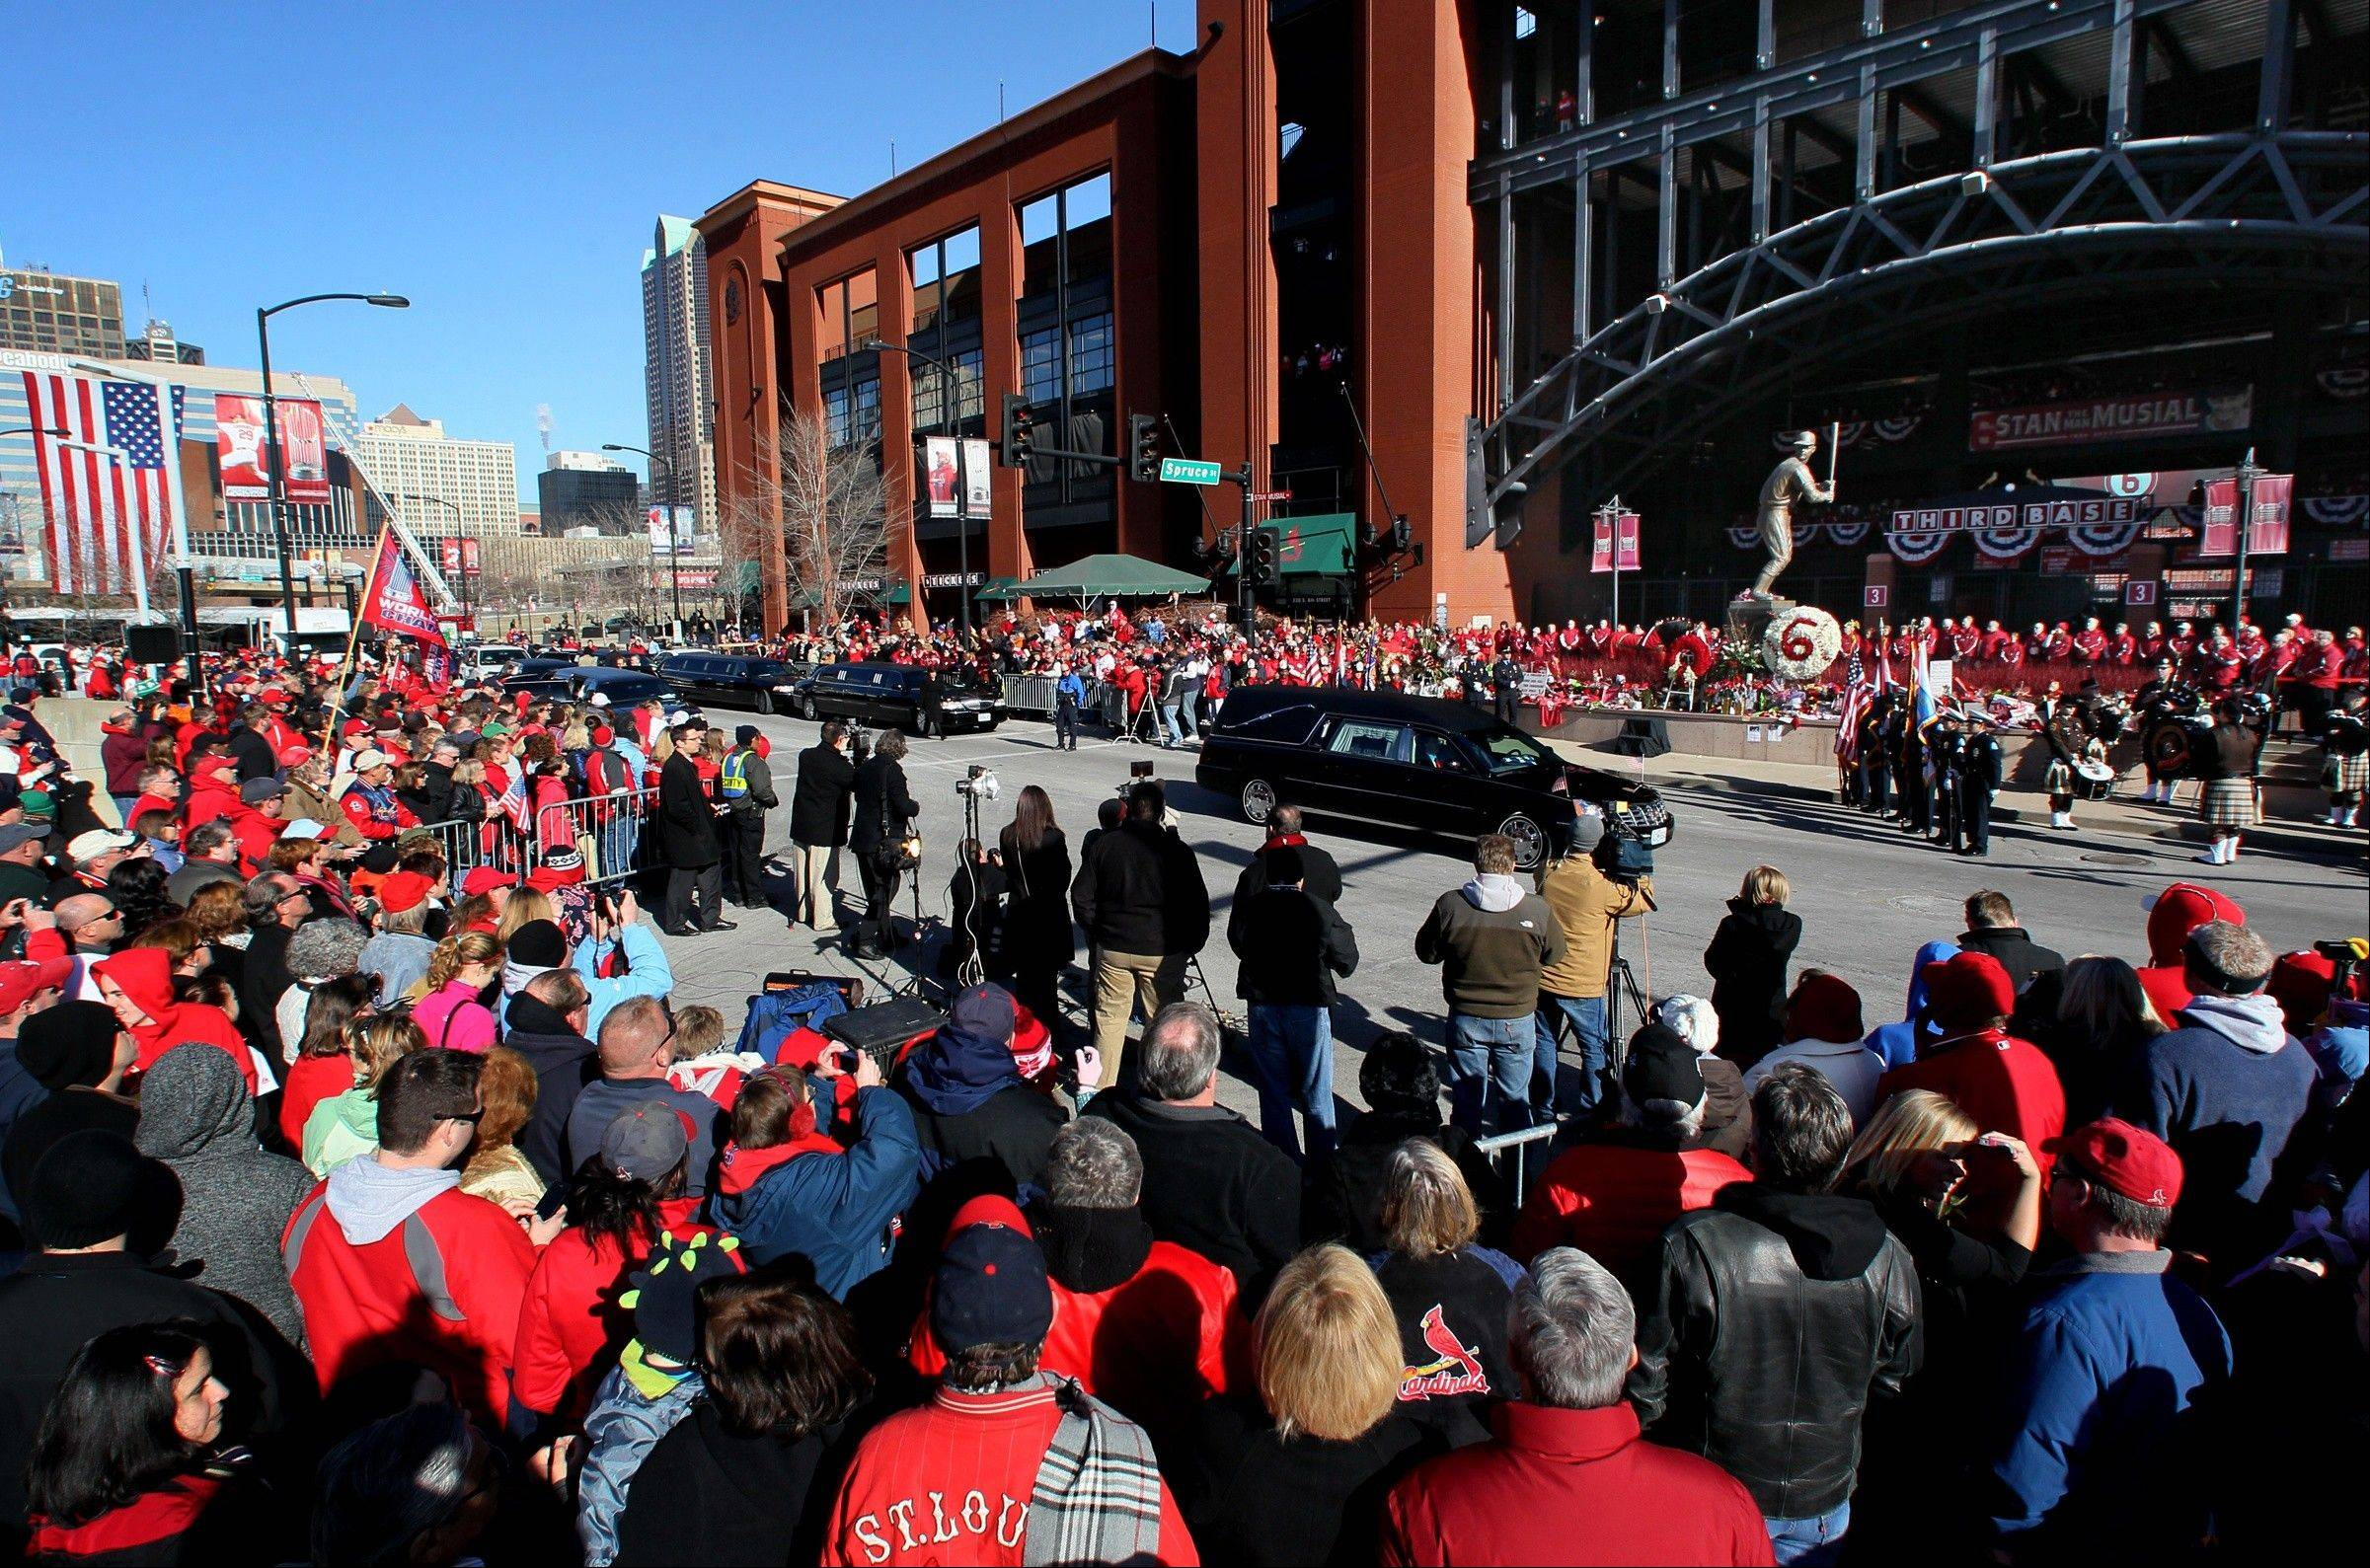 The hearse carrying Stan Musial stops in front of his statue outside of Busch Stadium for a wreath-laying ceremony after his funeral Saturday, Jan. 26, 2013.